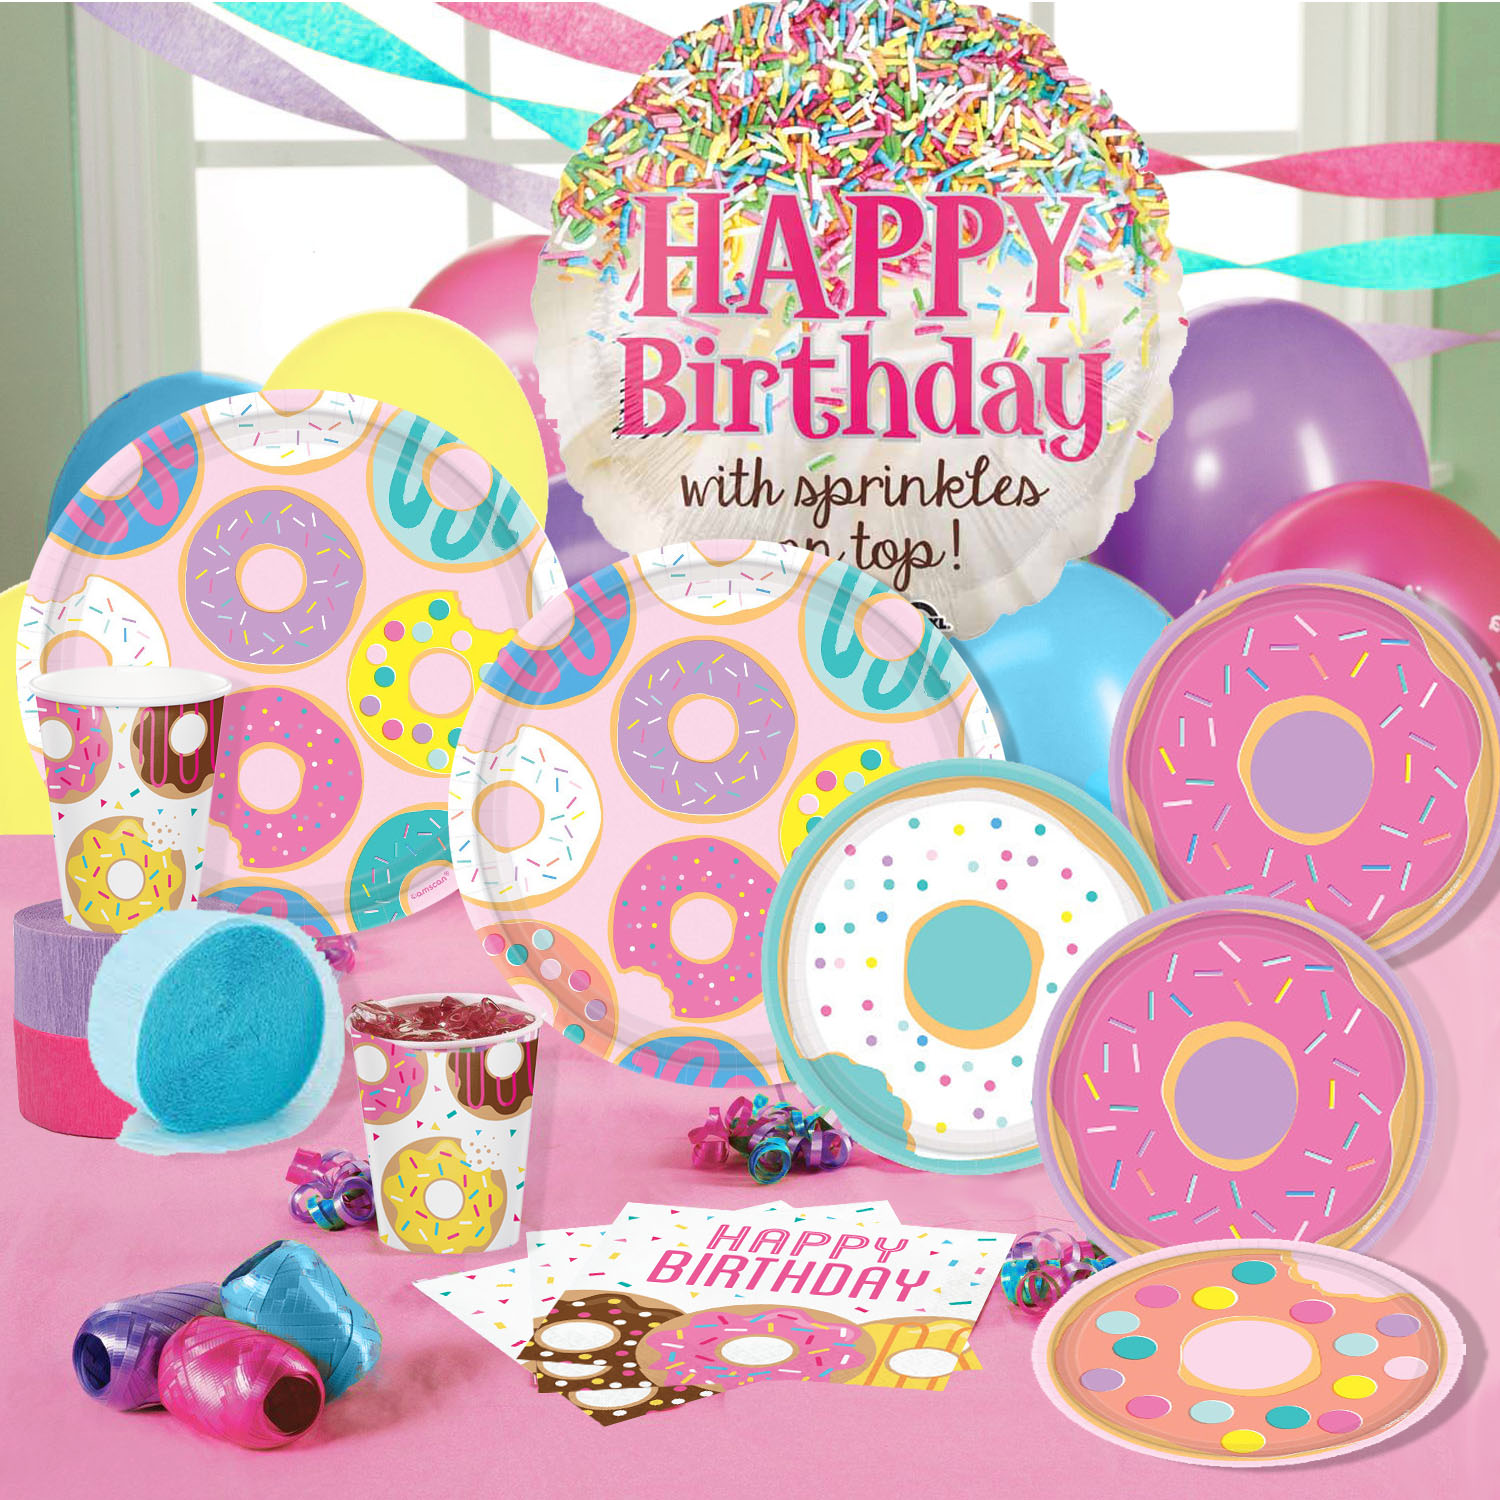 24 pc Donut Sprinkles Pencils /& 24 Donut Shaped Notepads Party Bundle Happy Deals~ Donut Party Notepads and Pencils Set